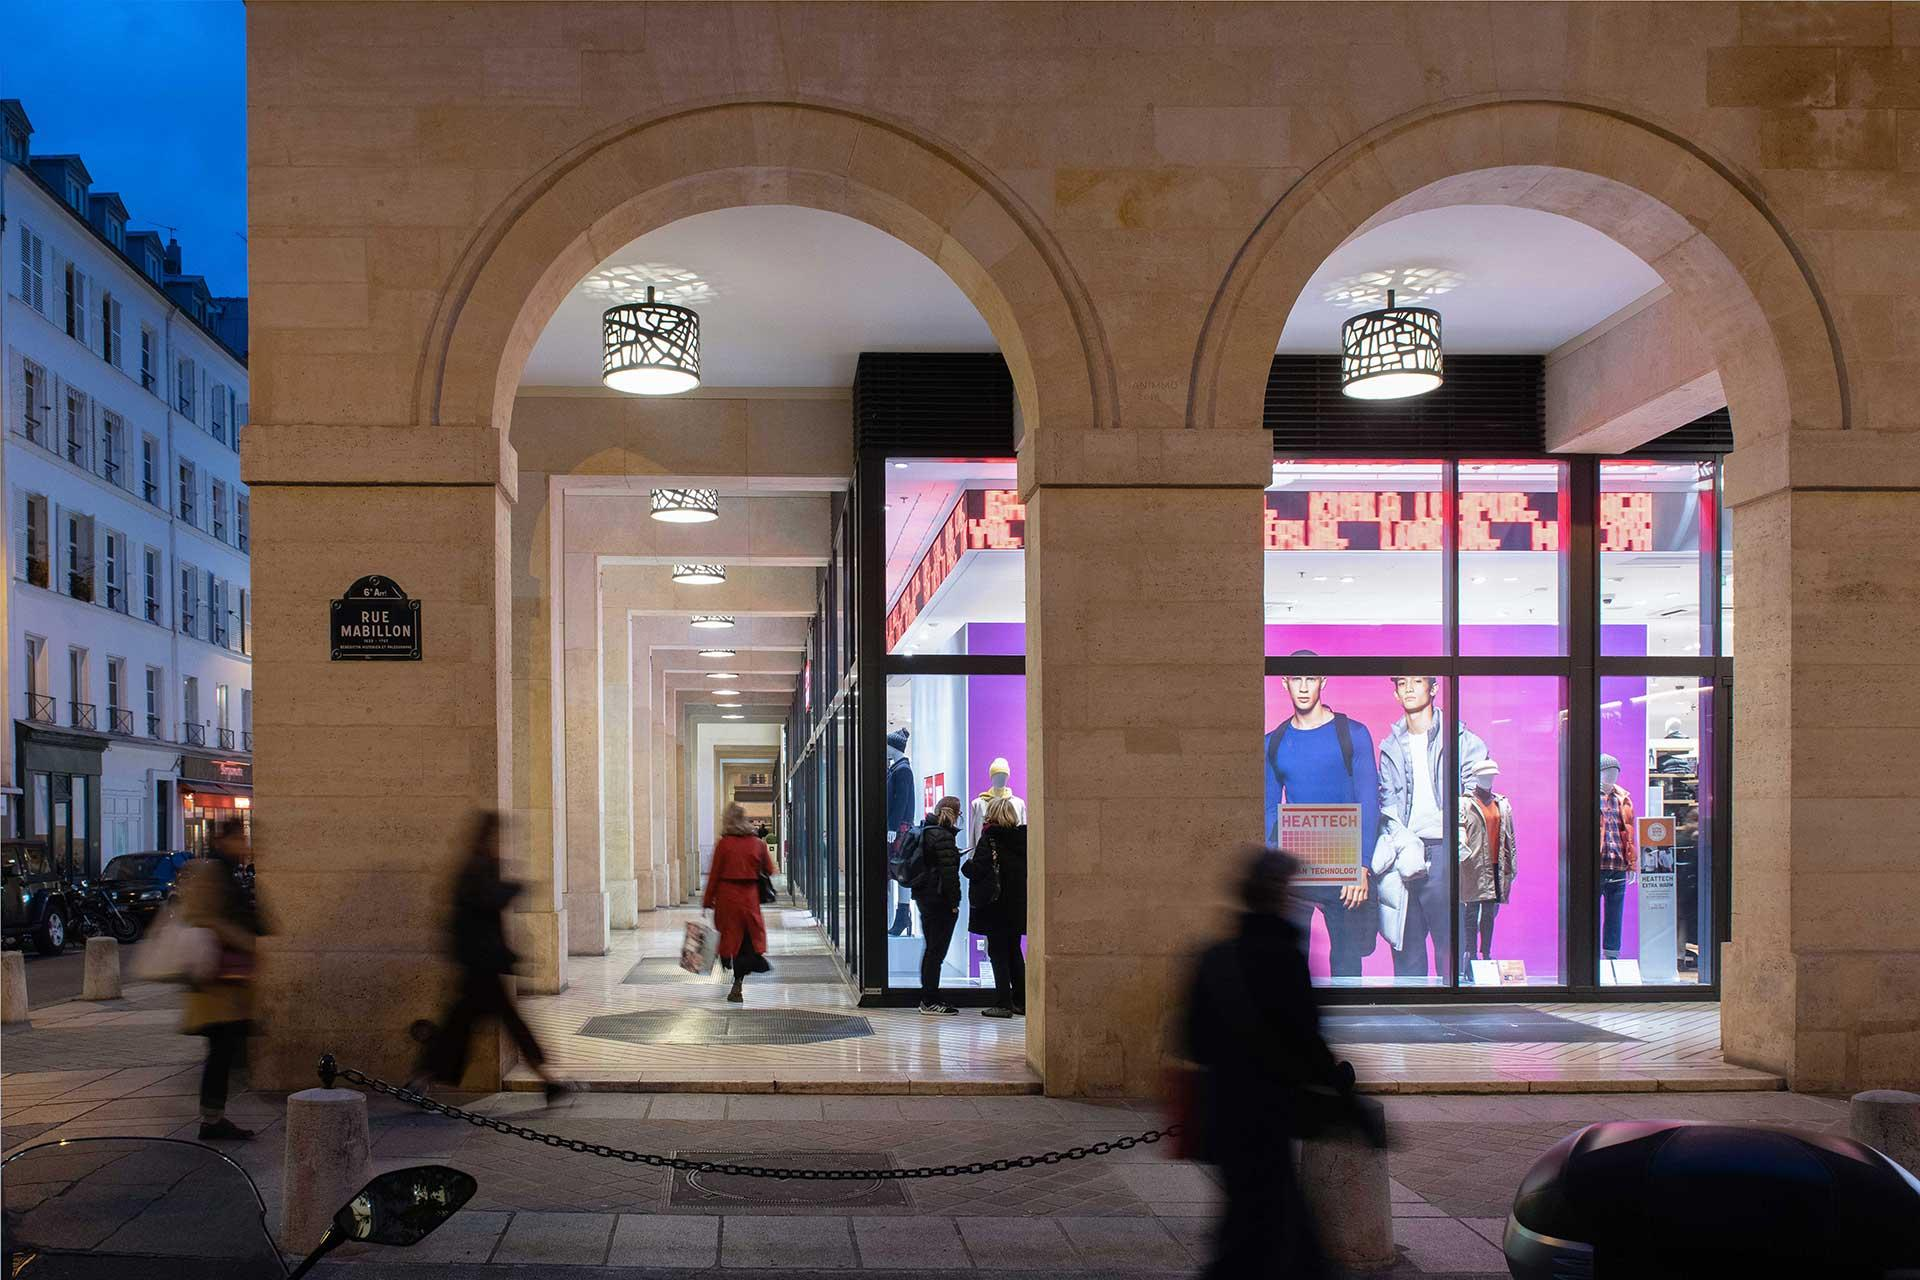 Customised luminaires fitted with warm white LEDs beckon in passer-bys with soft welcoming tones